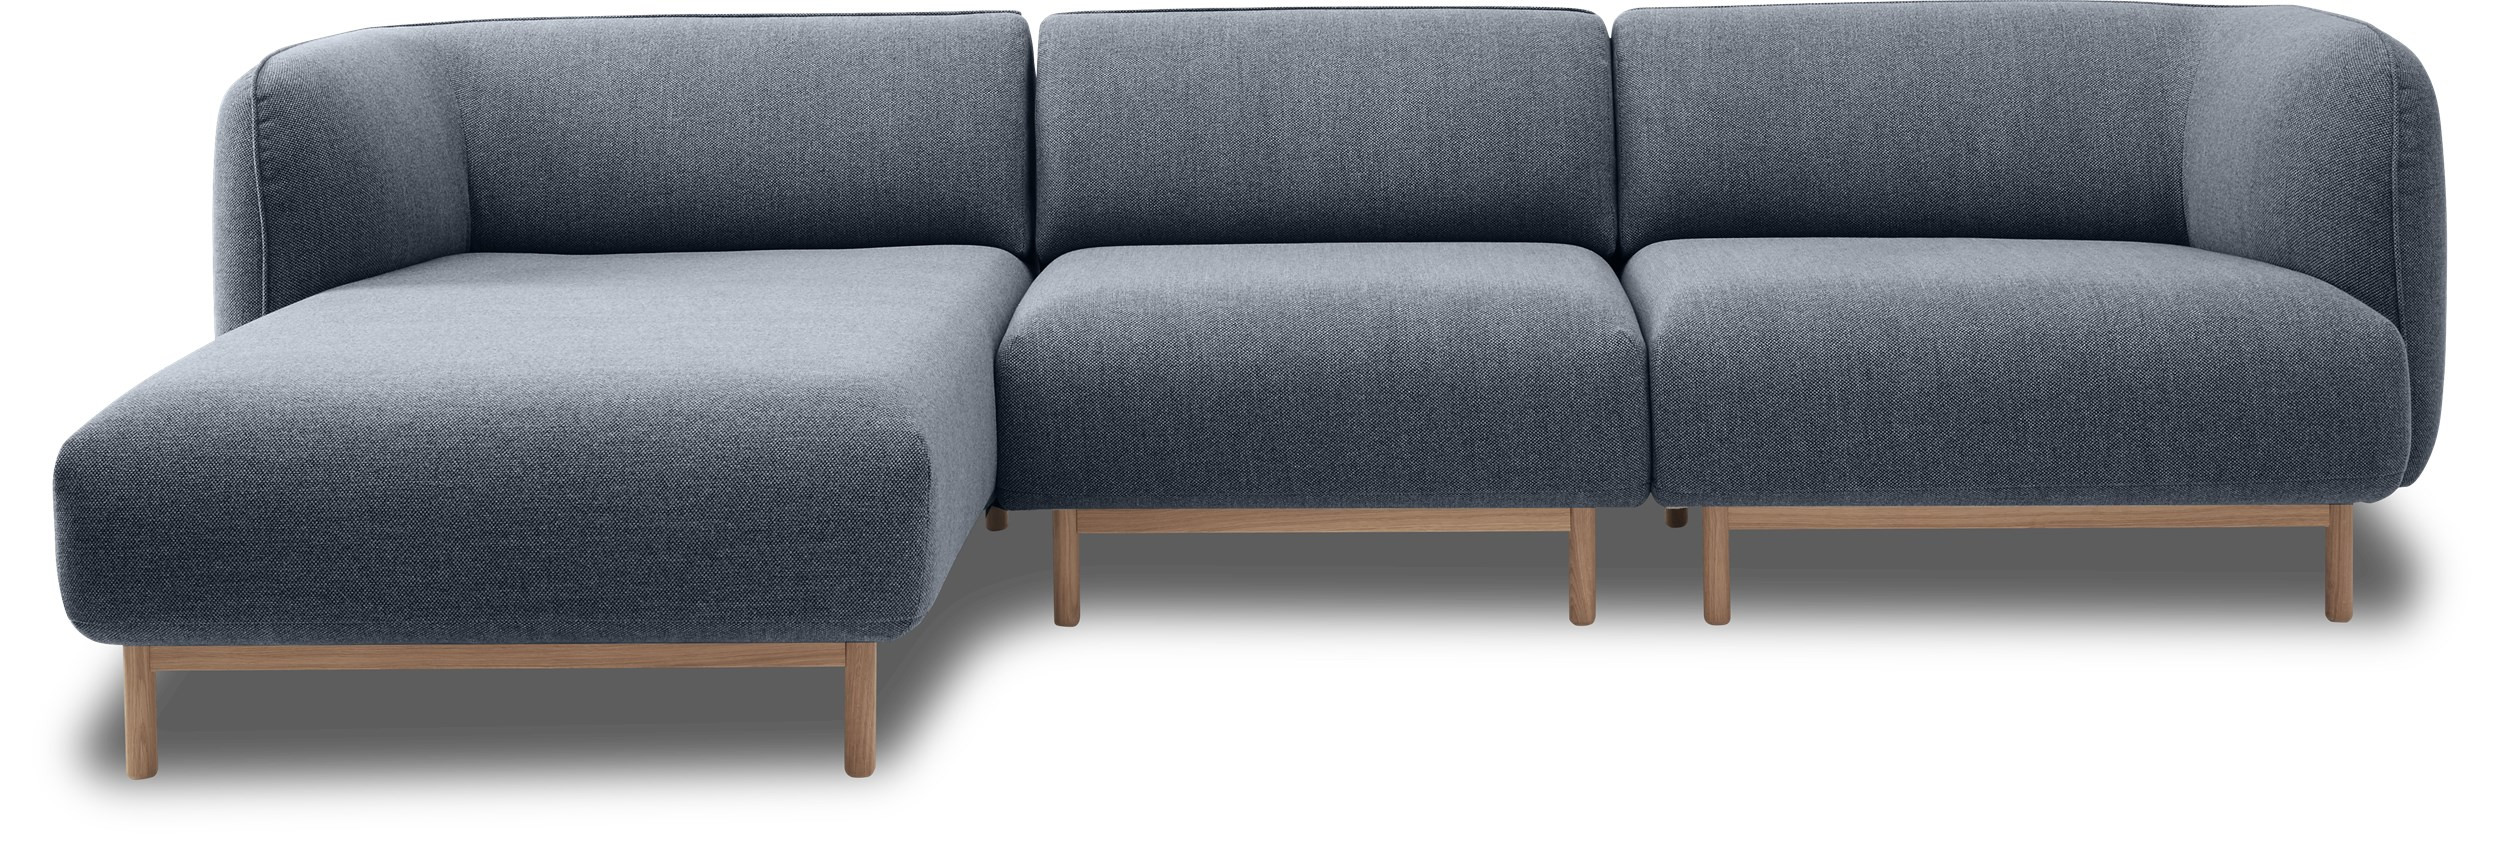 Egholm Sofa med chaiselong - Sofa med chaiselong